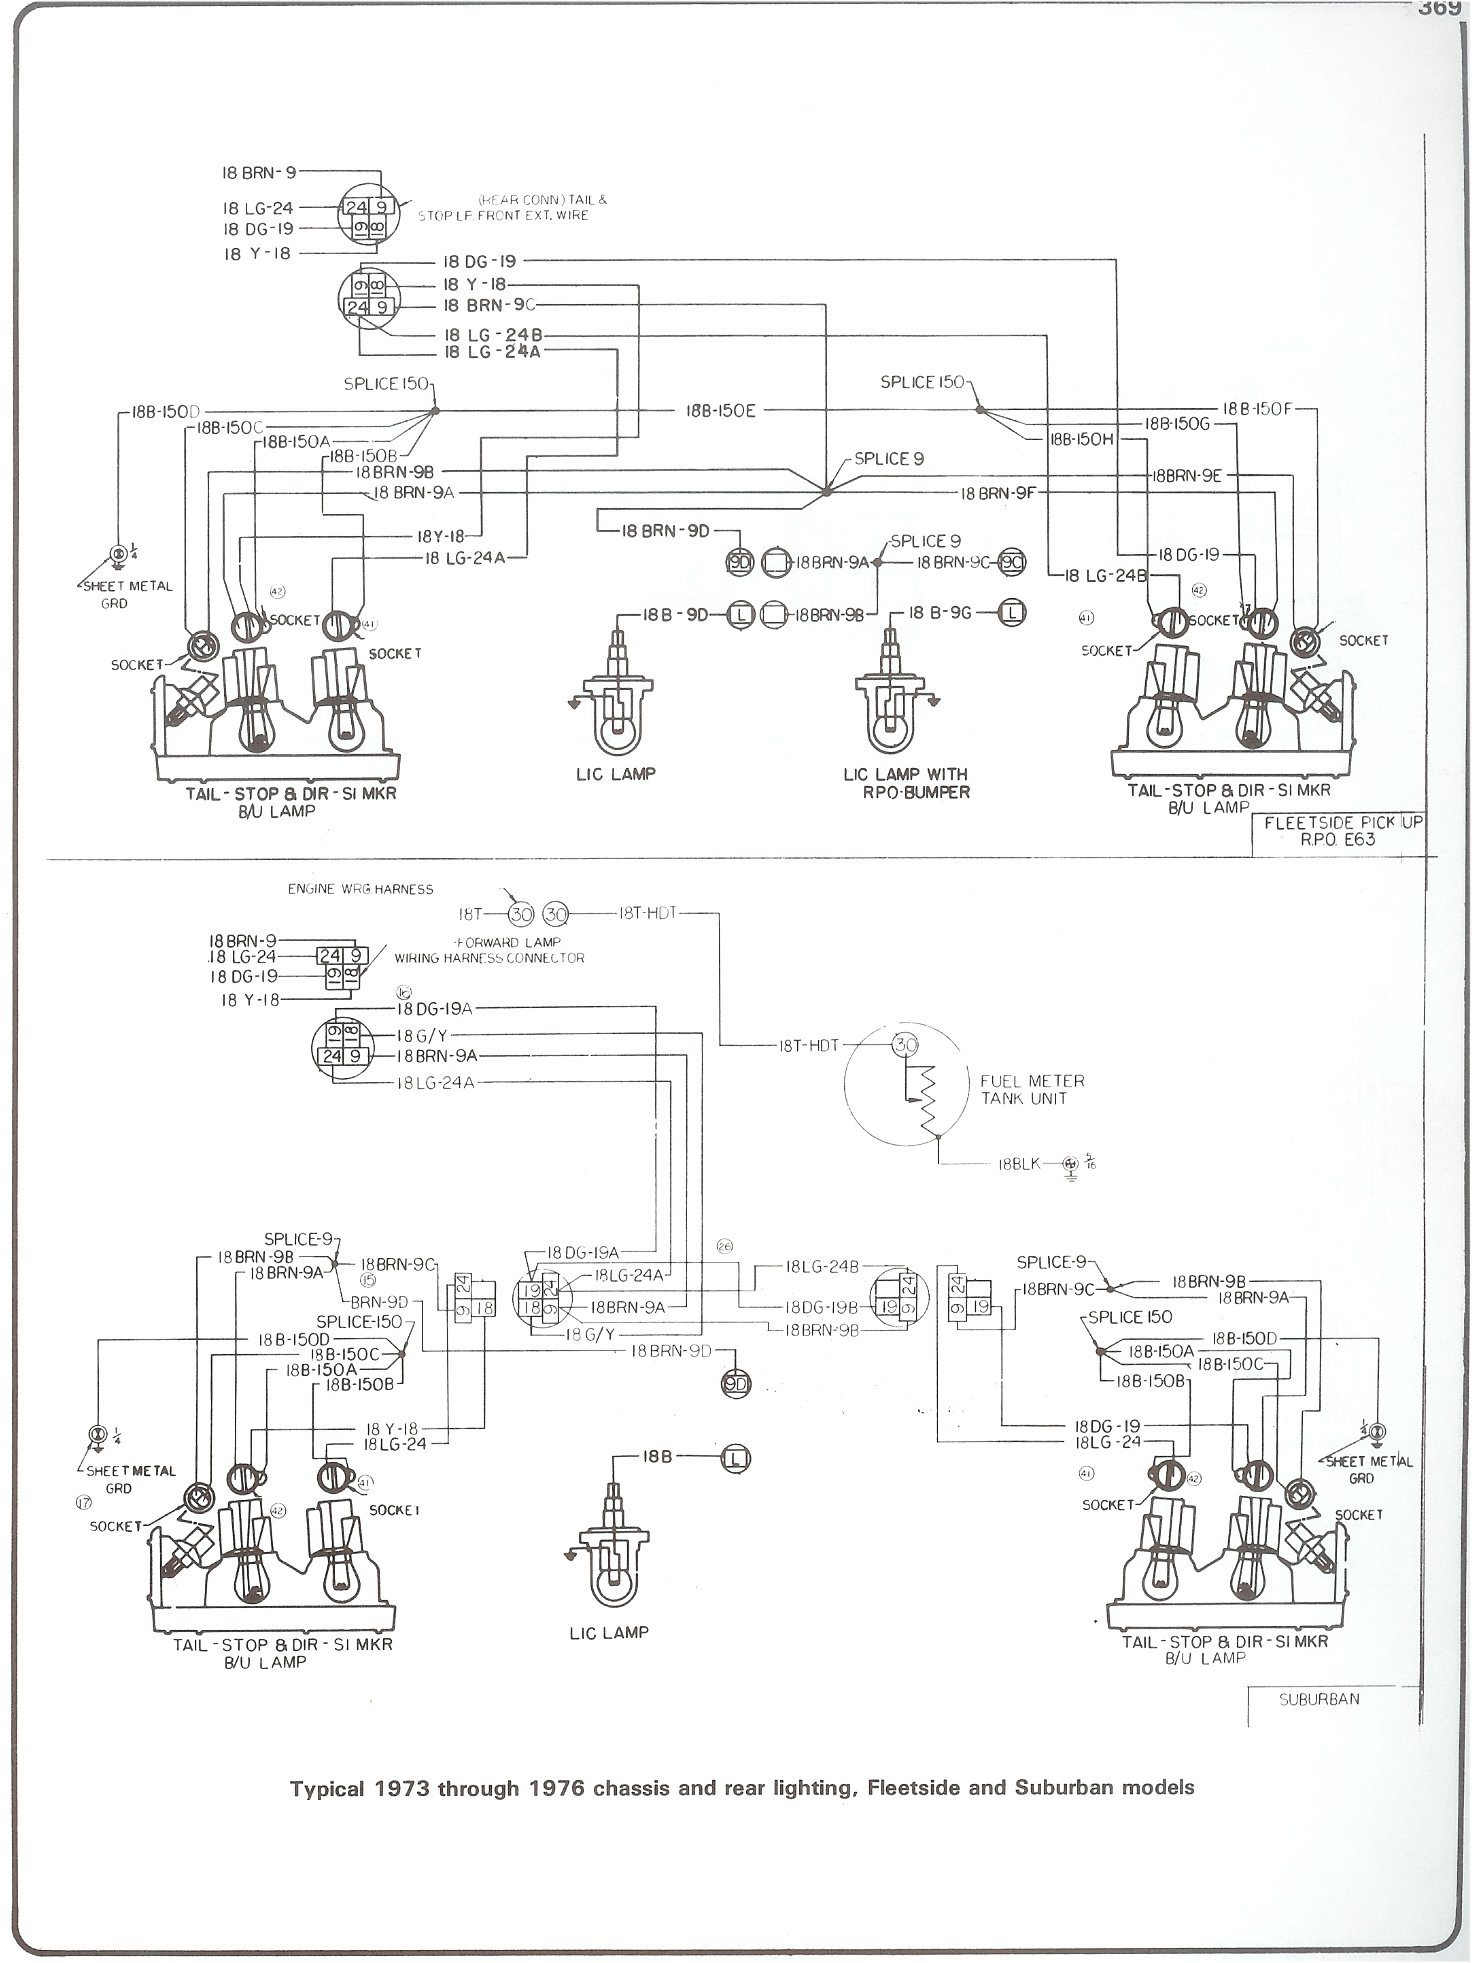 87 chevy truck engine wiring harness diagram 1980 c20 diesel, looking for wiper and pump diagram, or ...